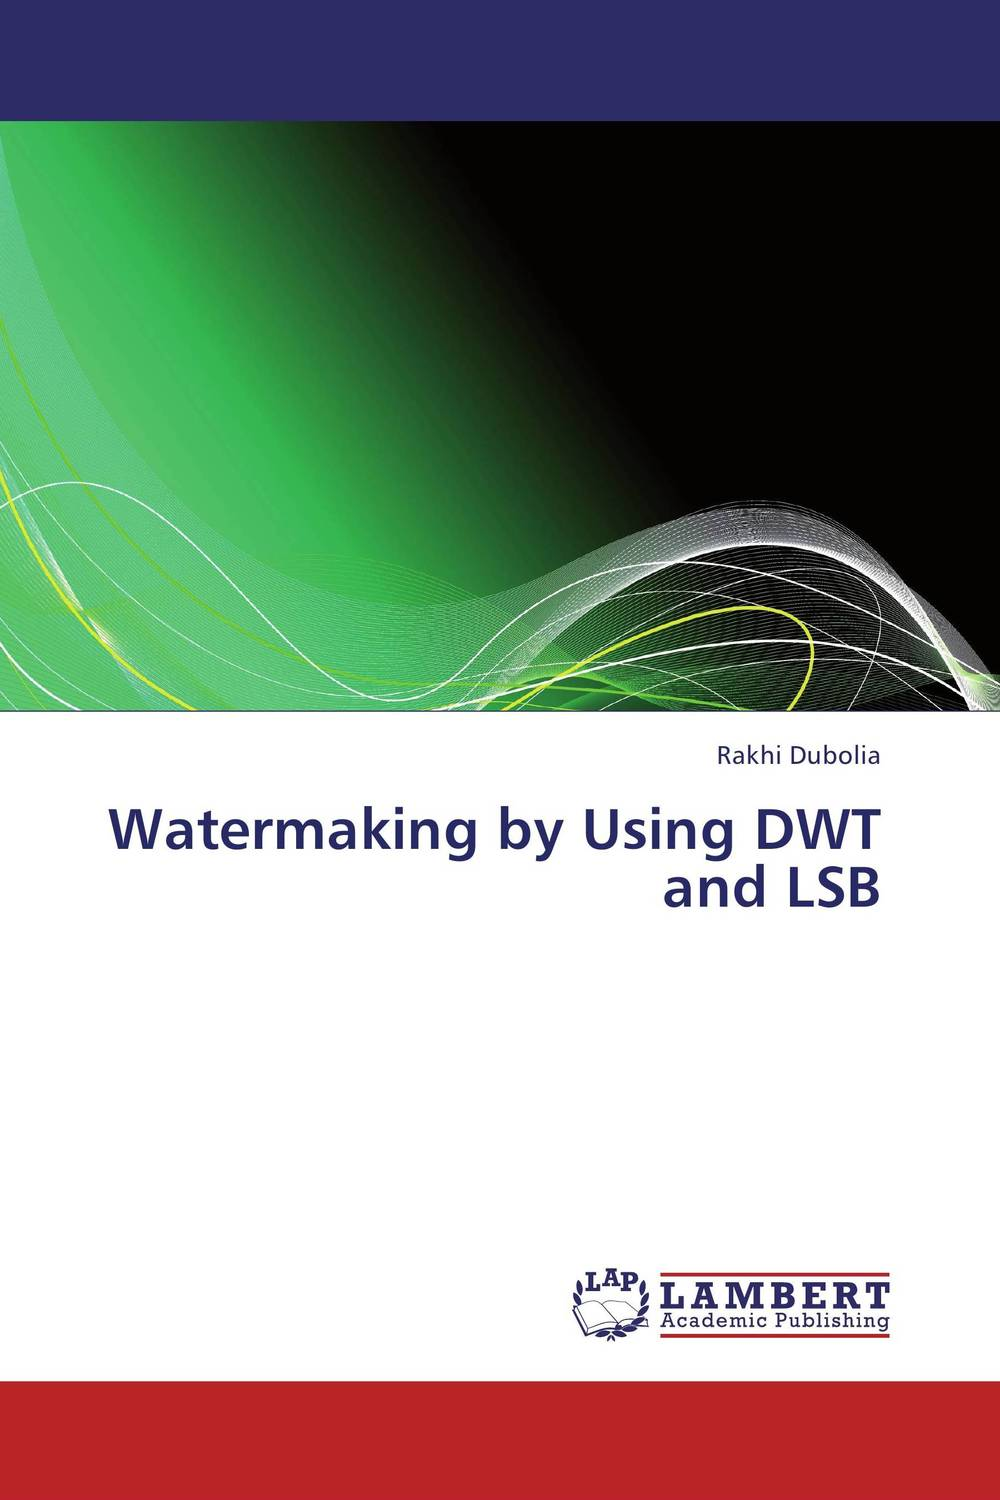 Watermaking by Using DWT and LSB packet watermarking using ip options field